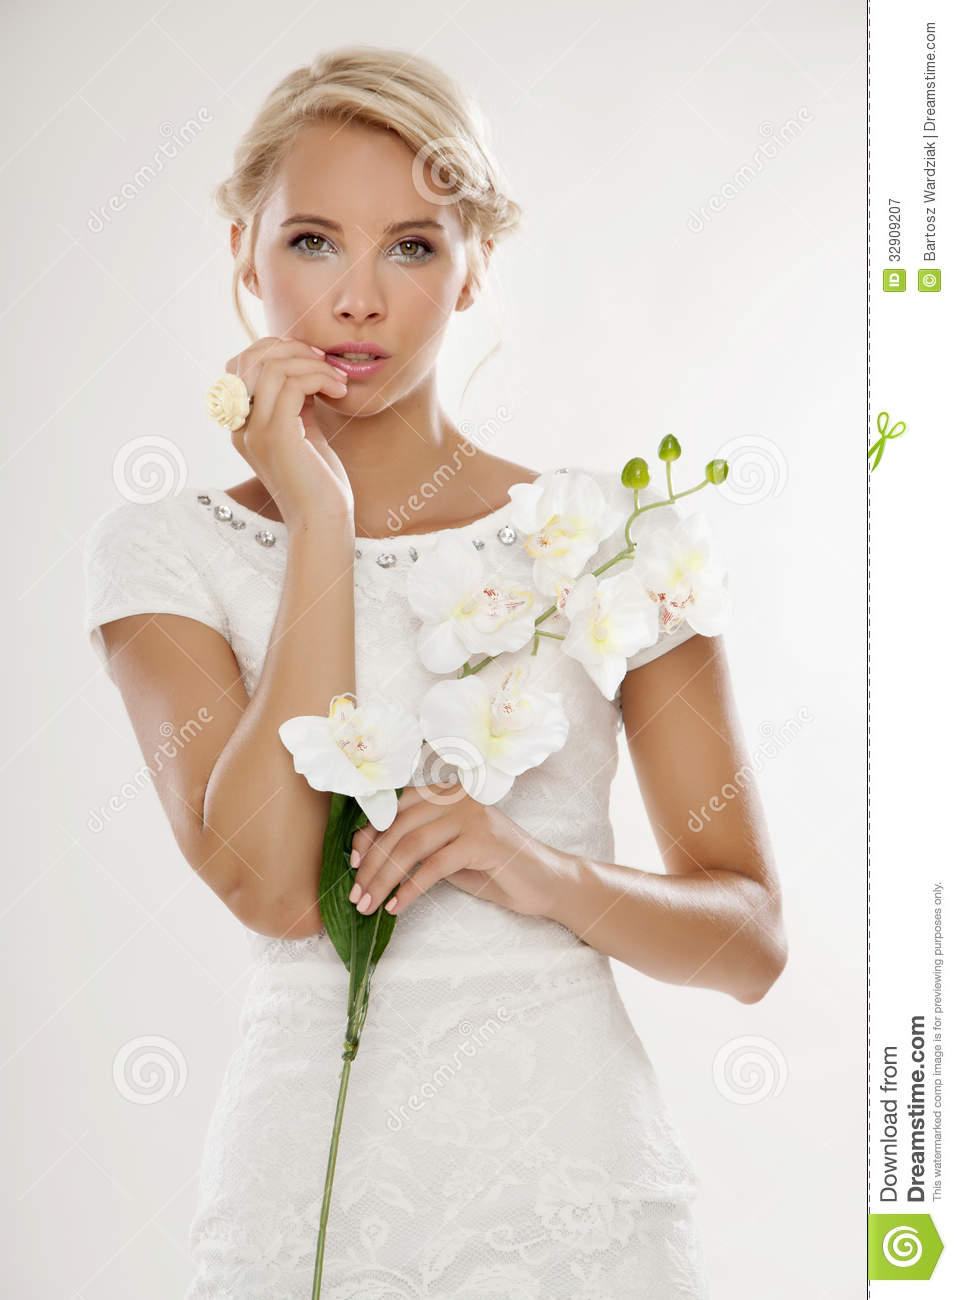 Young Bride In White Wedding Dress Happy Smiling Stock